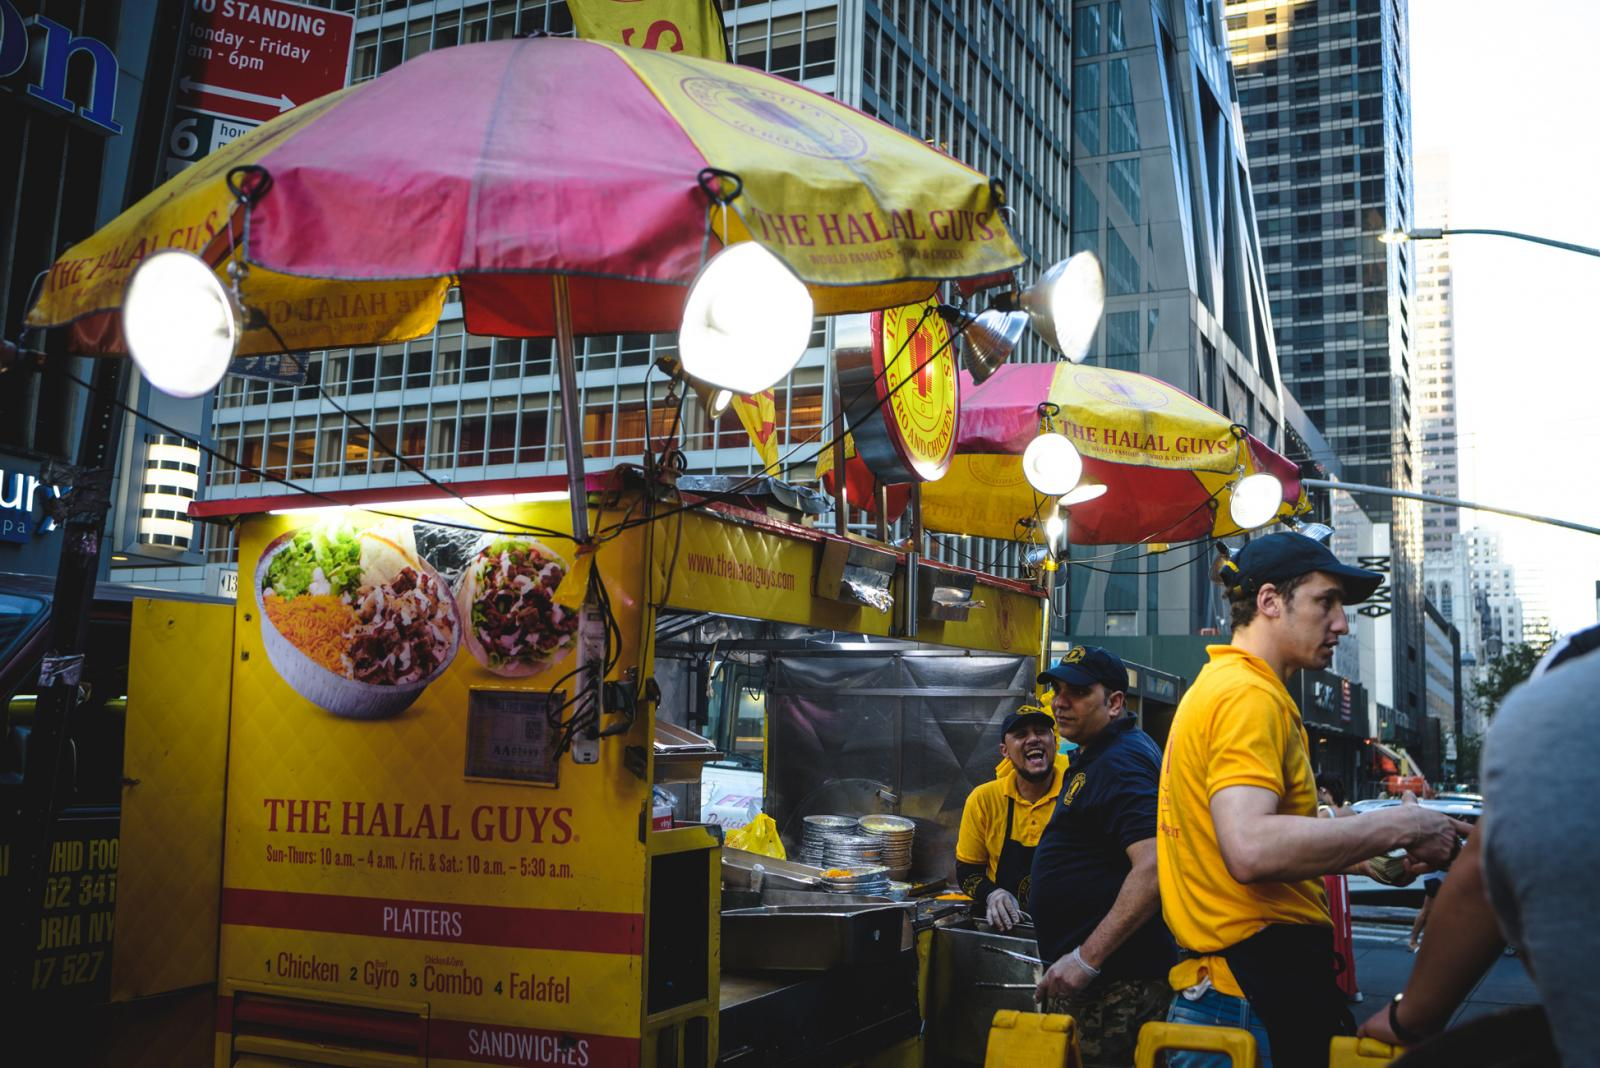 The Best Street Food in NYC – Food Trucks and Carts